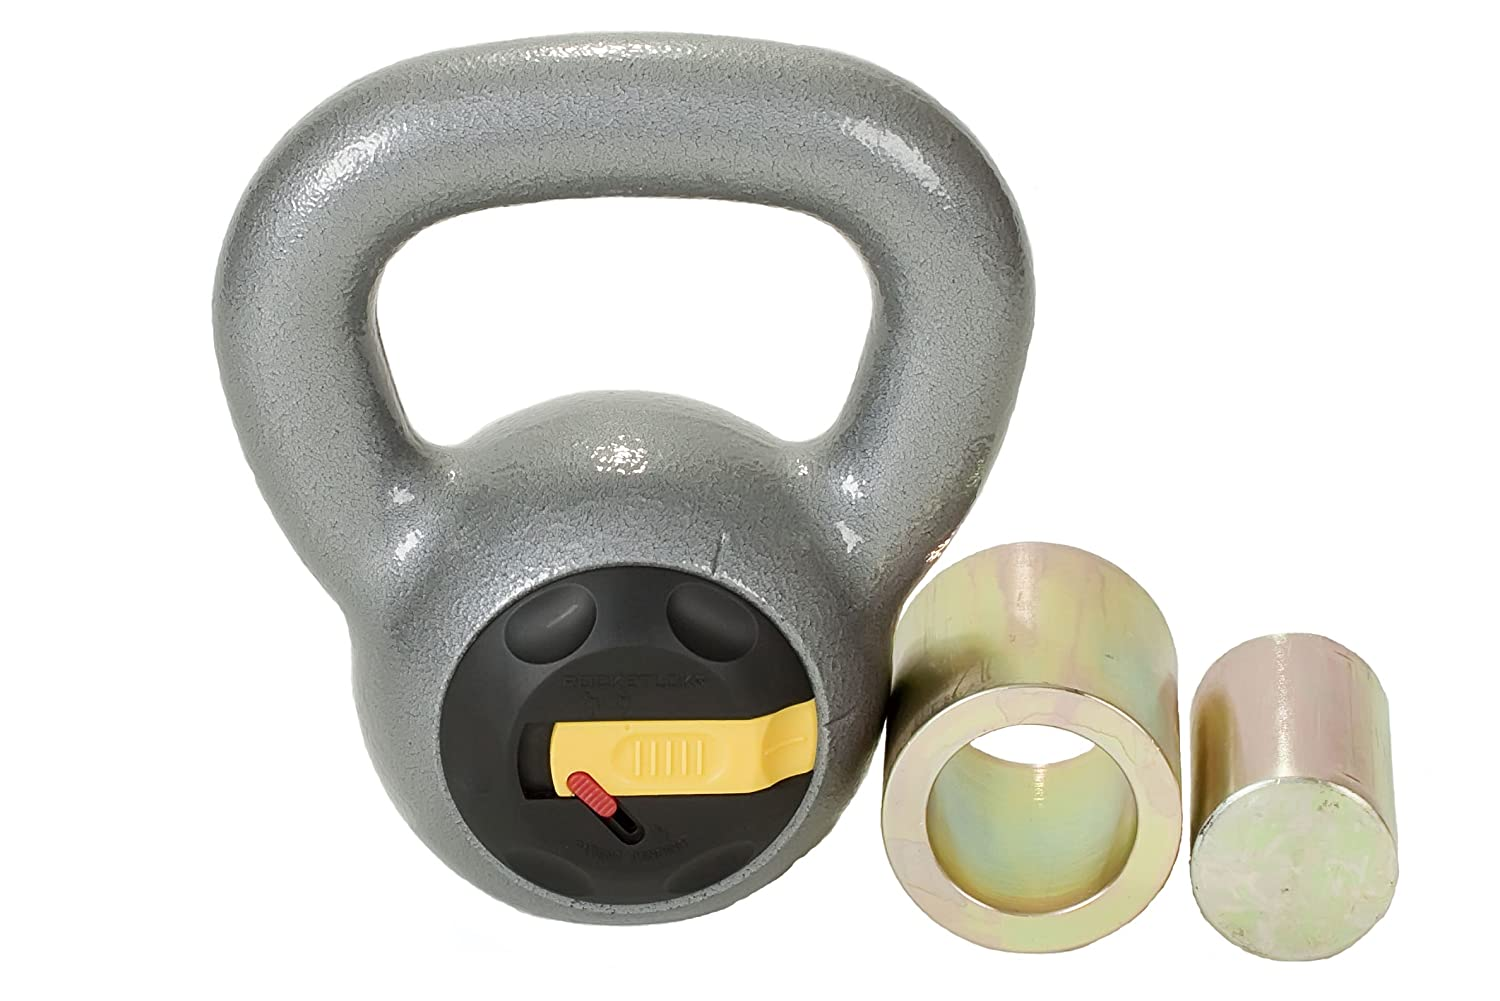 fast metabolism diet products, Rocketlok 14-20 Adjustable Kettlebell